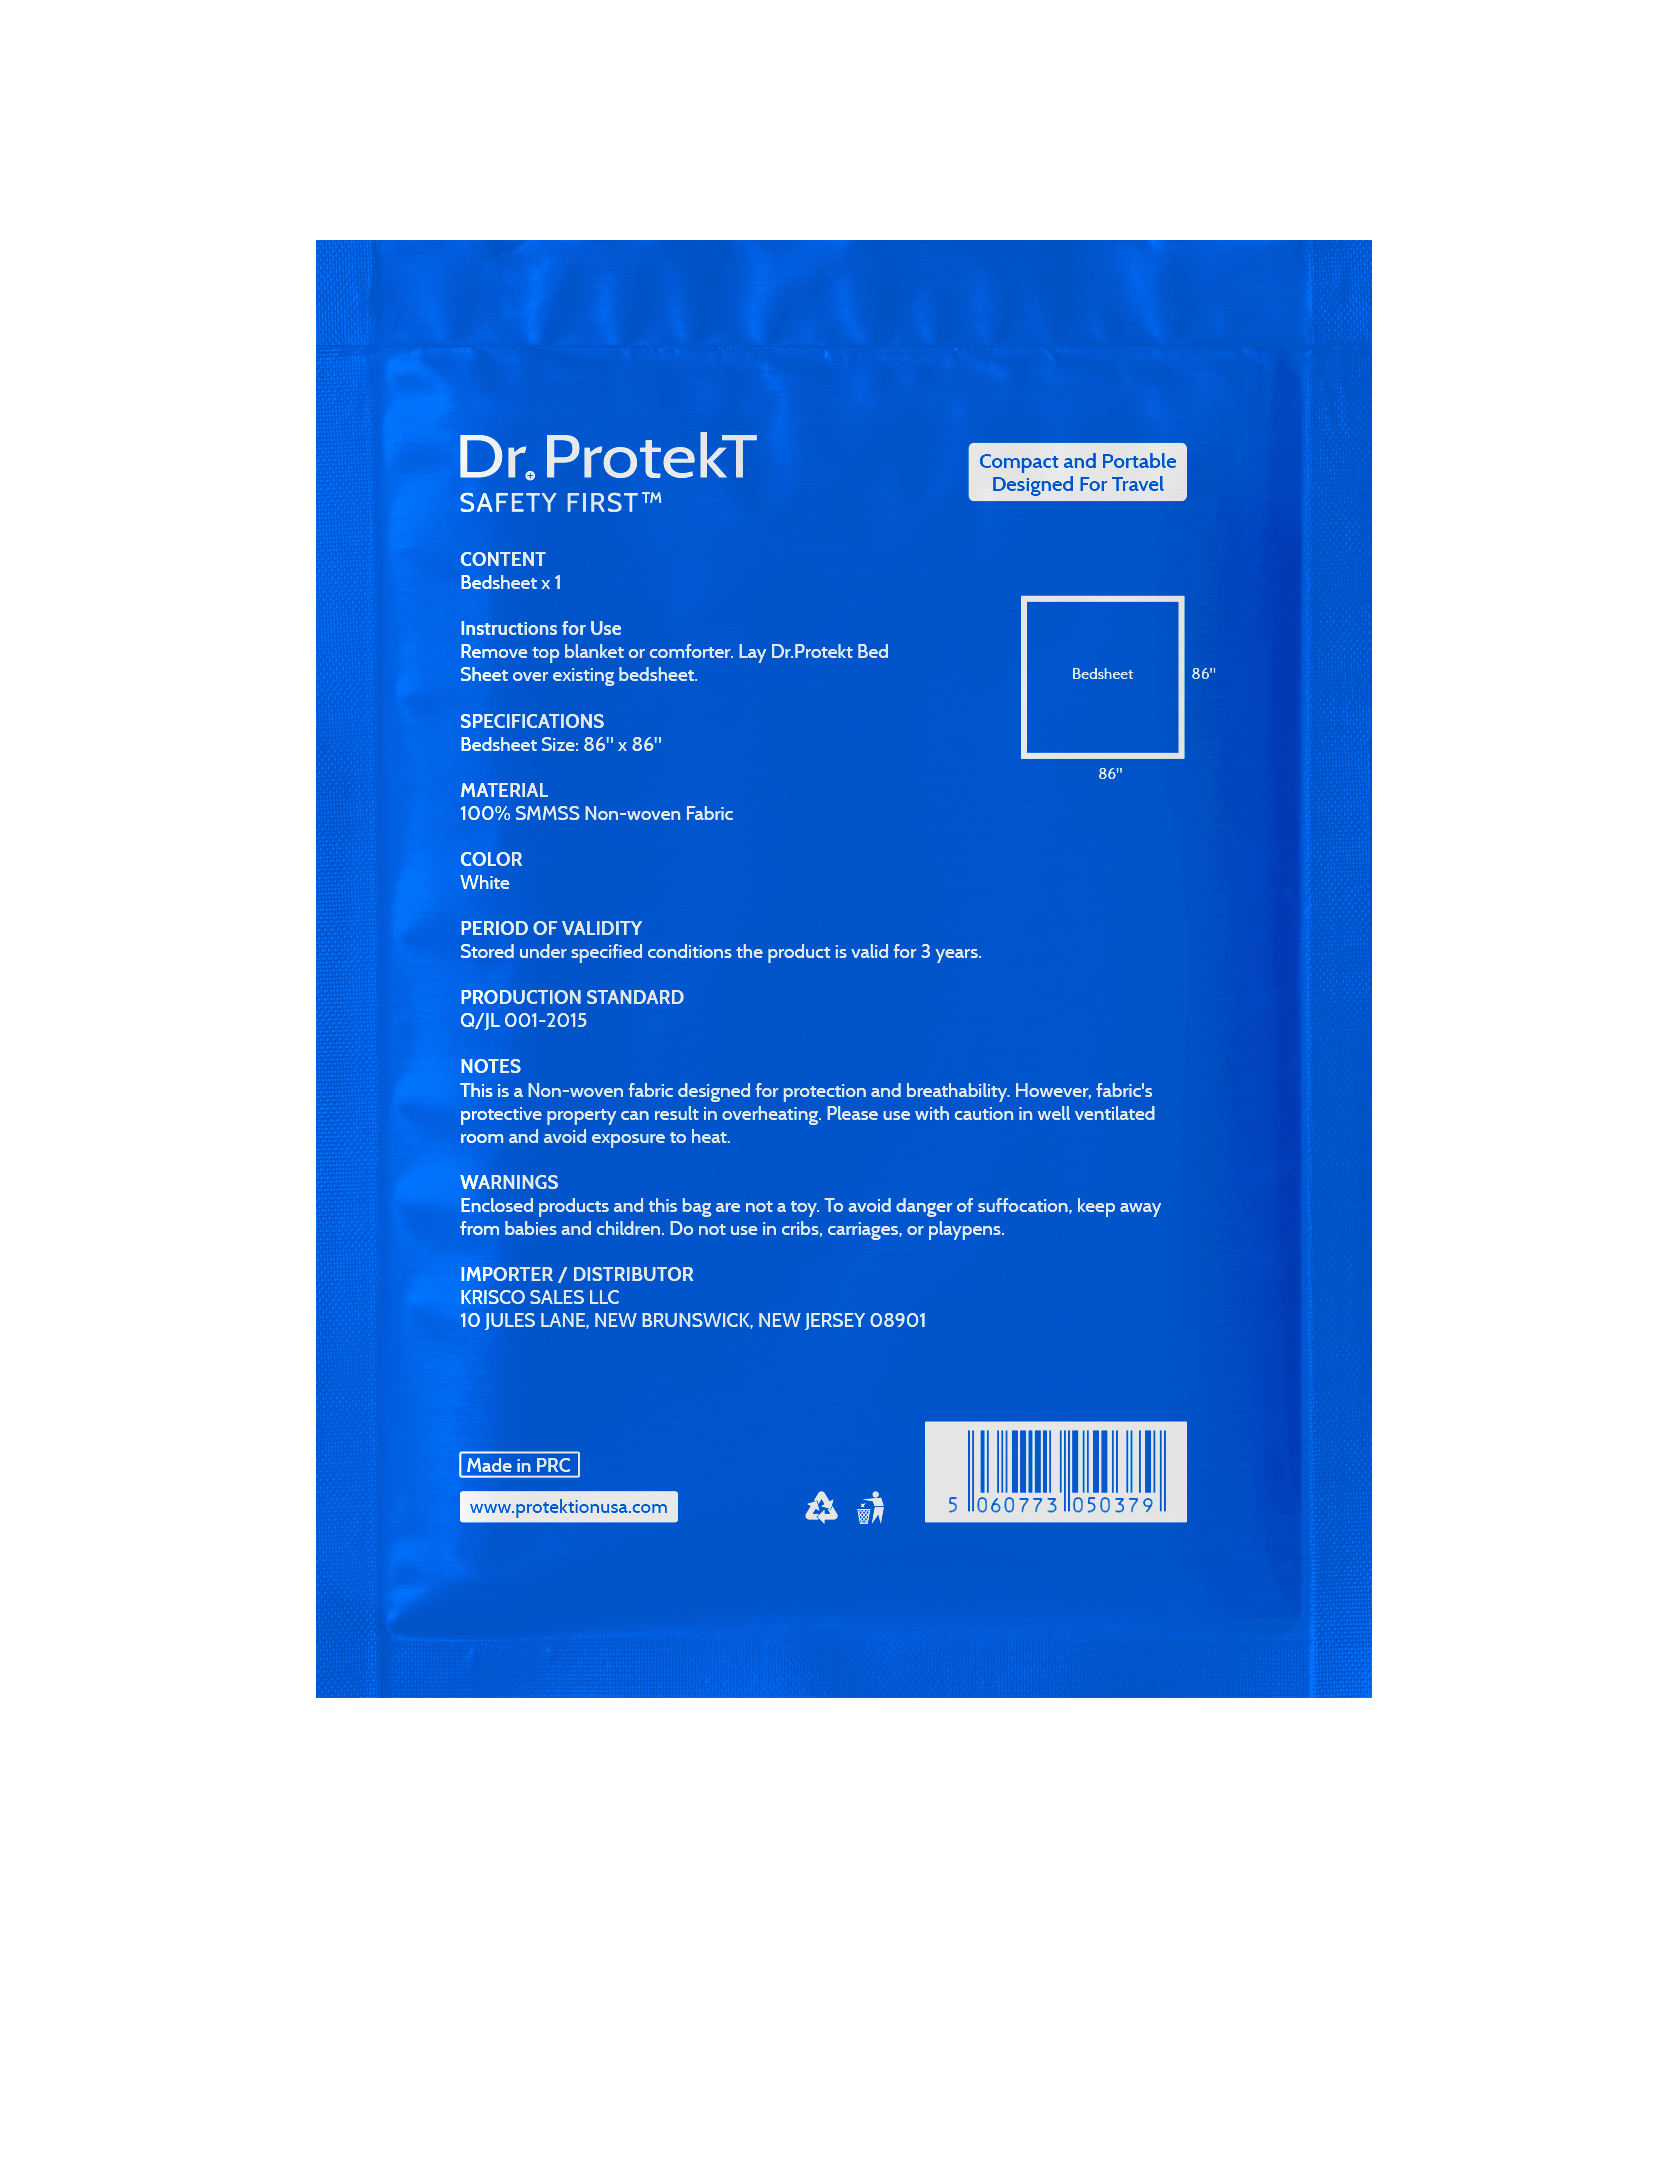 Dr. Protekt Safety First™ Travel Disposable Bedding Sheet (Size: Full/Double)